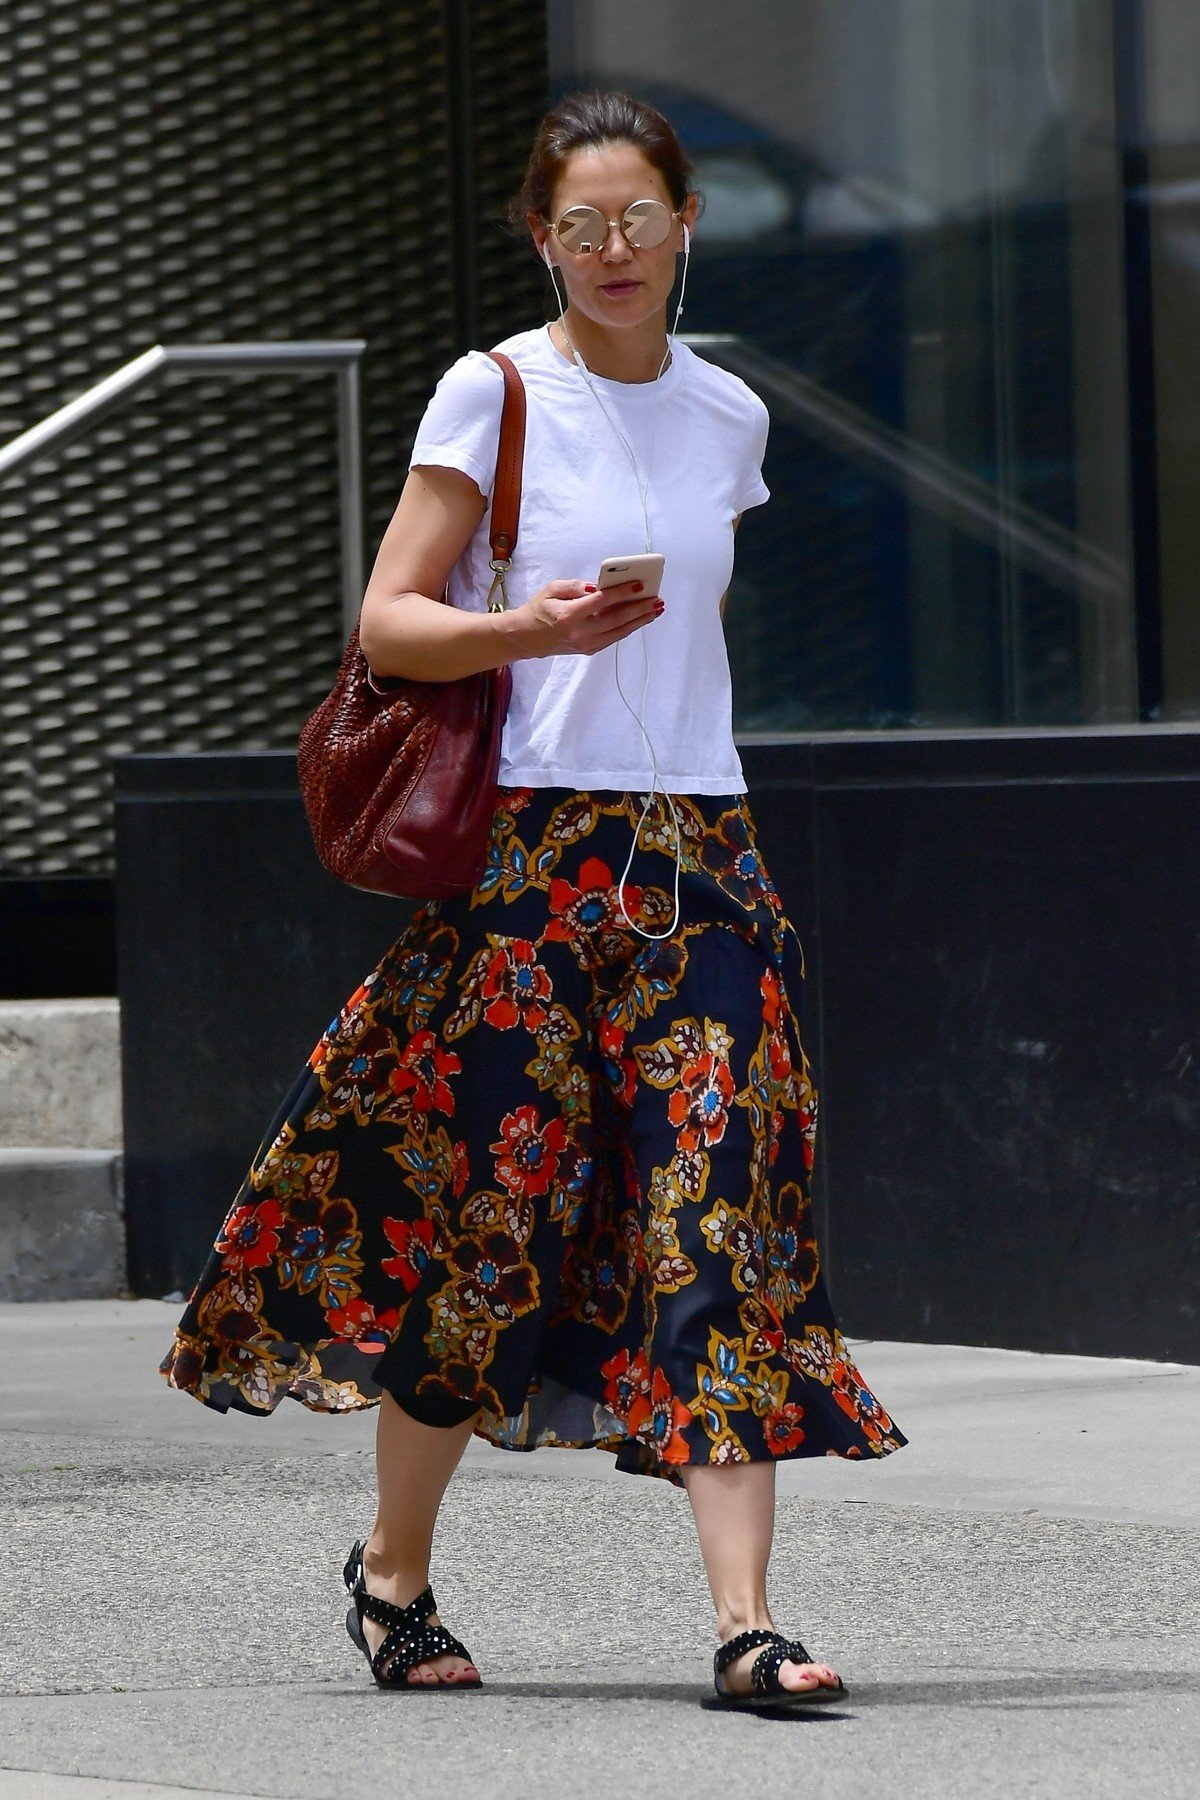 New York, NY  - *EXCLUSIVE*  - Katie Holmes chats on the phone while out in NY heading to her favorite coffee shop.  BACKGRID USA 7 JUNE 2019, Image: 444305493, License: Rights-managed, Restrictions: RIGHTS: WORLDWIDE EXCEPT IN FRANCE, GERMANY, POLAND, Model Release: no, Credit line: Profimedia, Backgrid USA